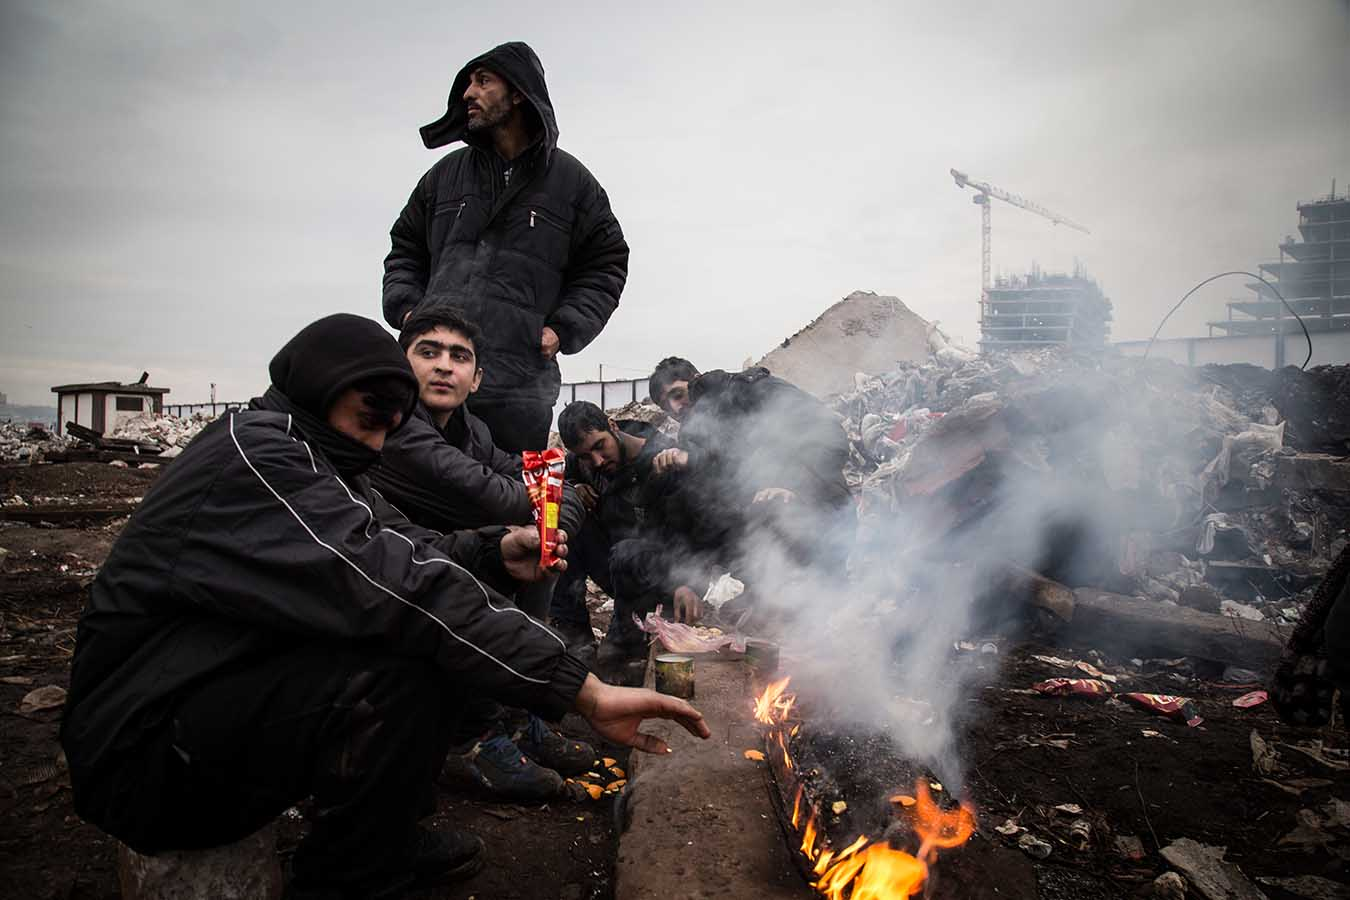 """Afghani migrants warm themselves sitting around an open fire, just outside the """"Barracks"""", a derelict complex of industrial building in the area of Belgrade's Central Station.  Since Summer 2016, an increasing number of migrants have been stuck in Serbia as a result of the shuttering of the Western Balkan Migration route. Belgrade, Serbia, February 1st 2017."""